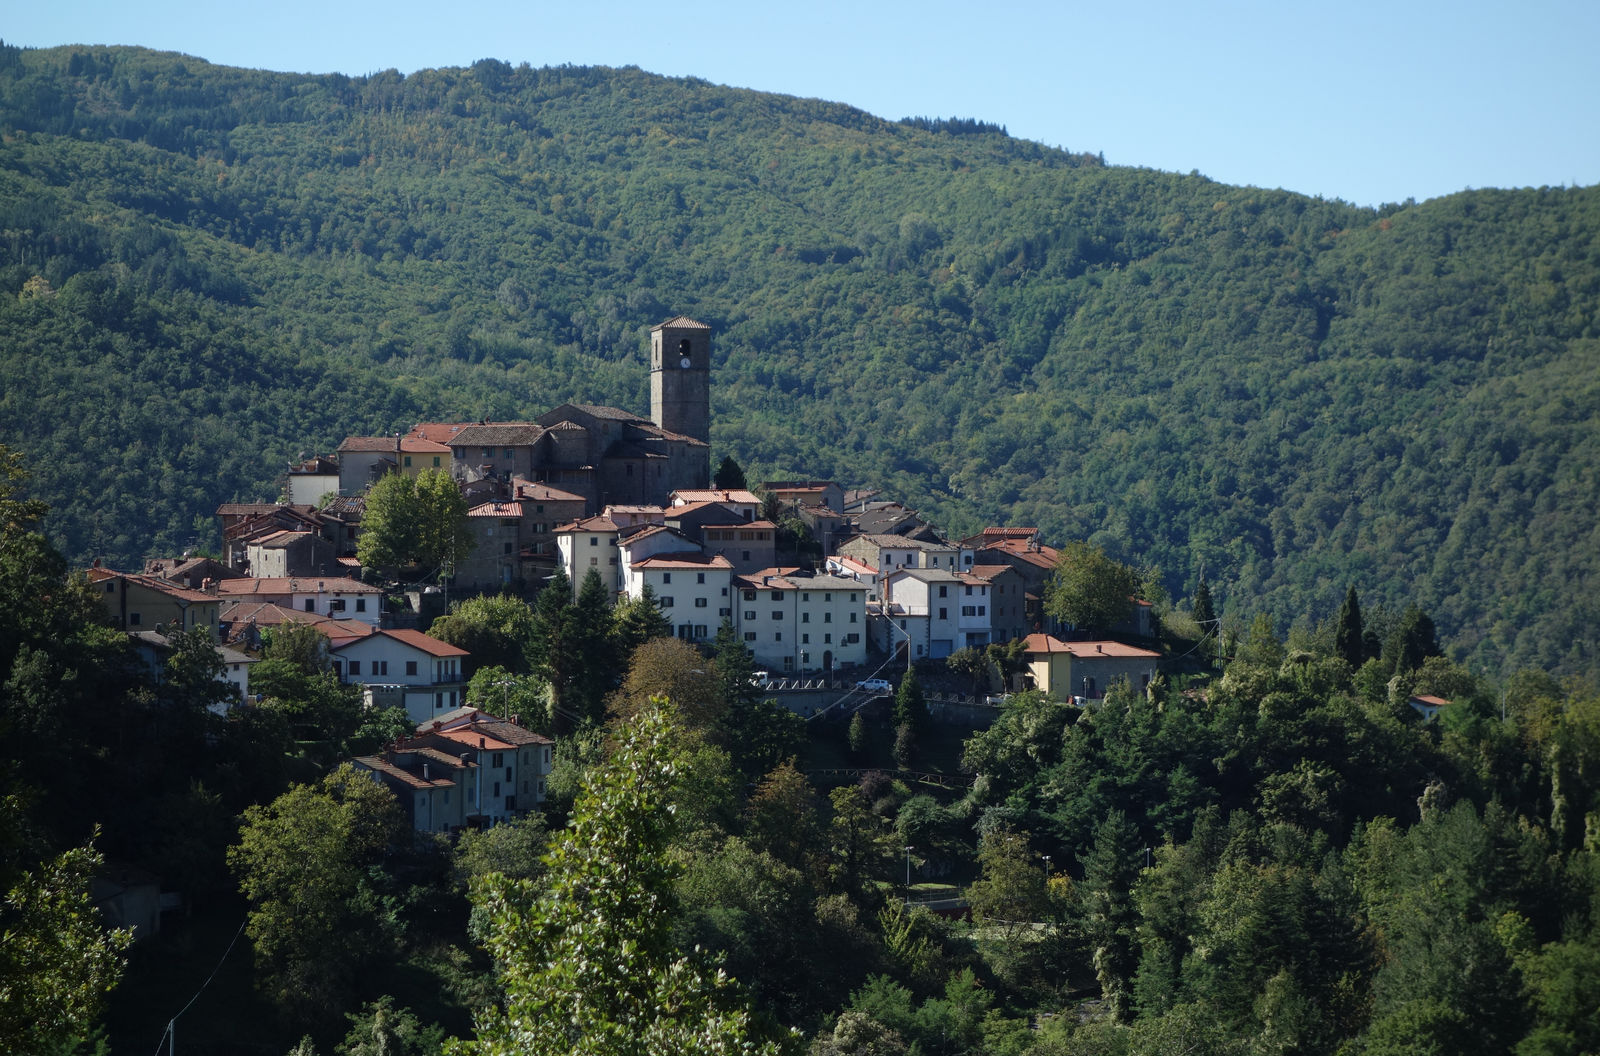 San Marcello Piteglio - The most beautiful mountain in Pistoia